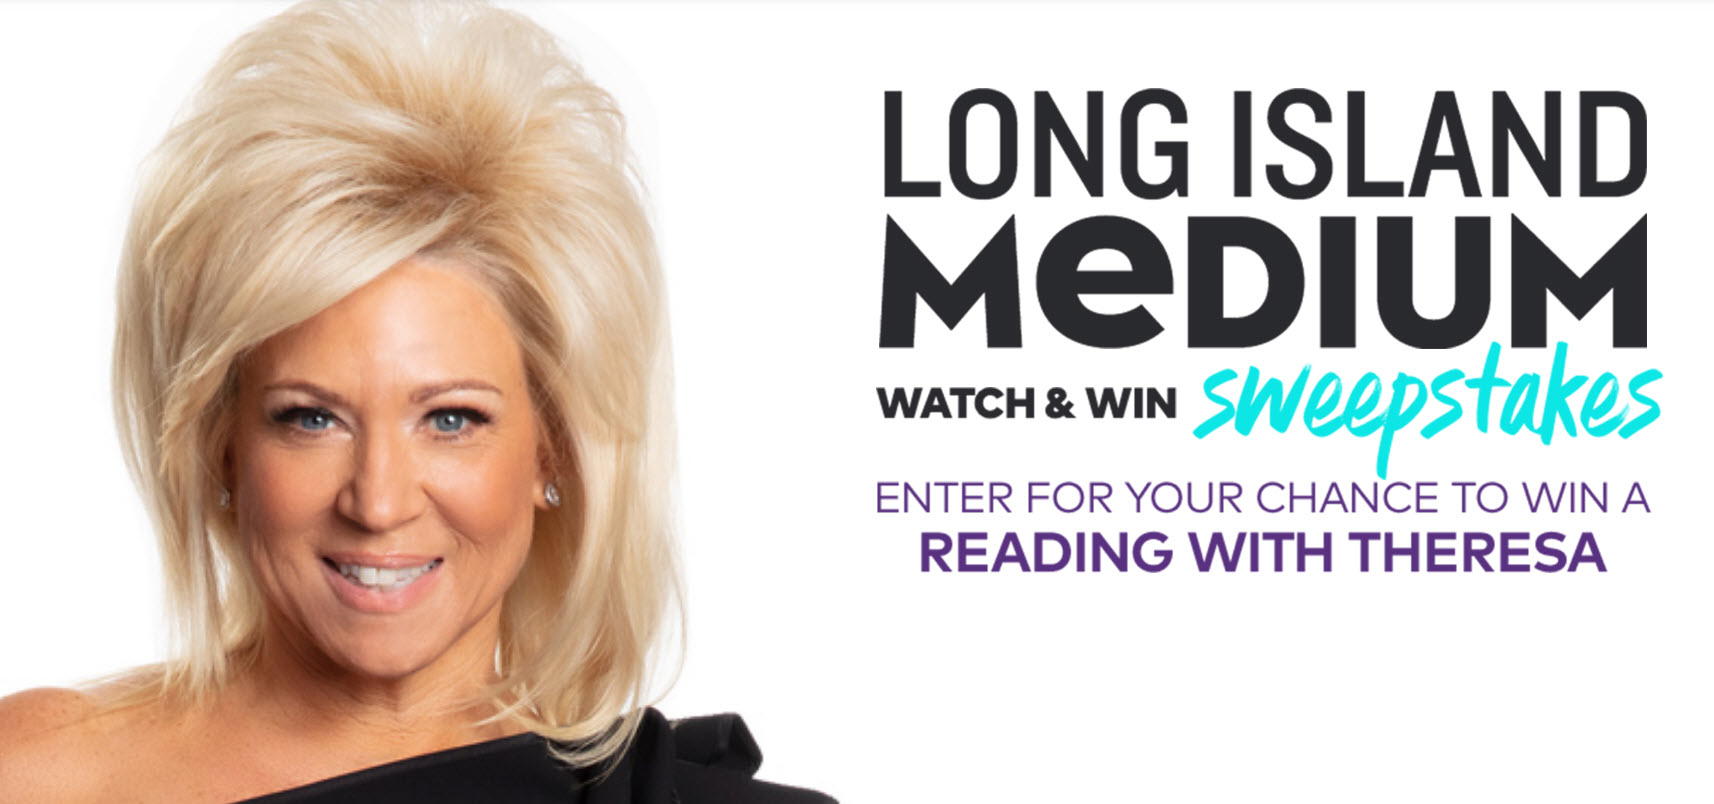 Enter for your chance to win a reading from the Long Island Medium, Theresa Caputo. The grand prize winner will win a trip to New York City with a meet and greet with Theresa. Submit the weekly code for your chance to win a 1-on-1 reading with Theresa! One unique code will be revealed each week unlocking more chances for you to win.